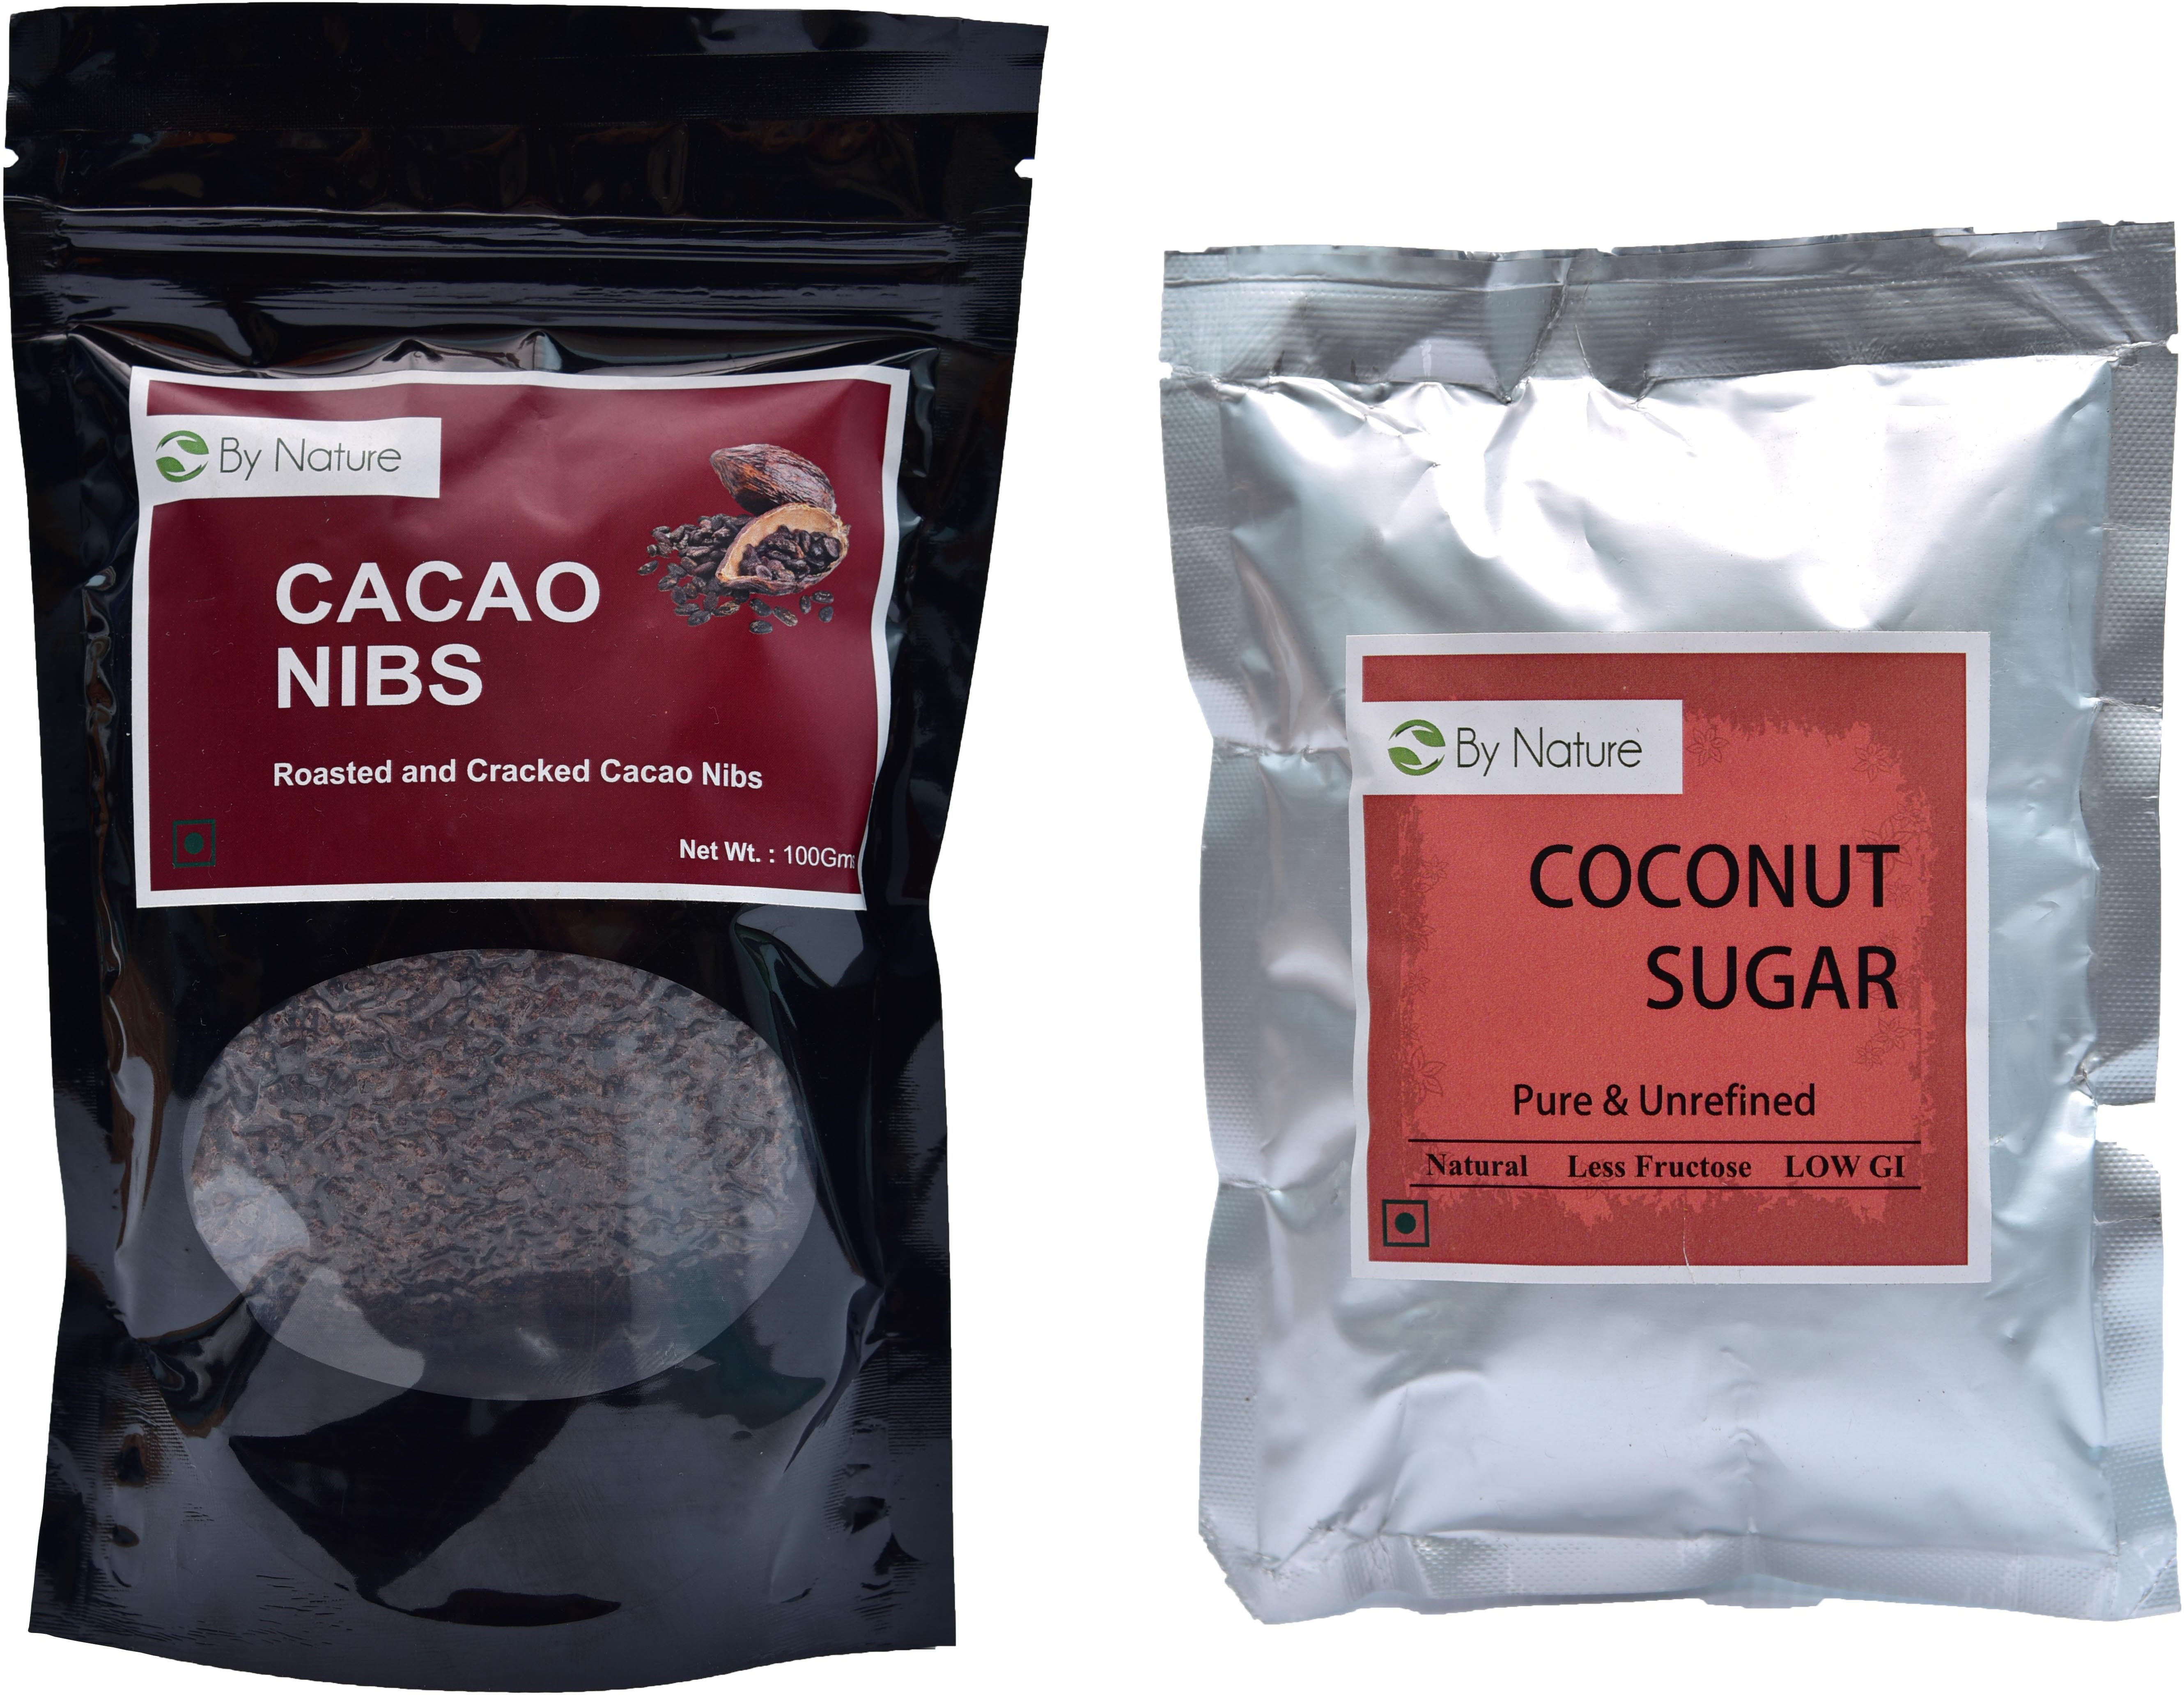 By Nature 1 Cacao Nibs, 1 Coconut Sugar Combo